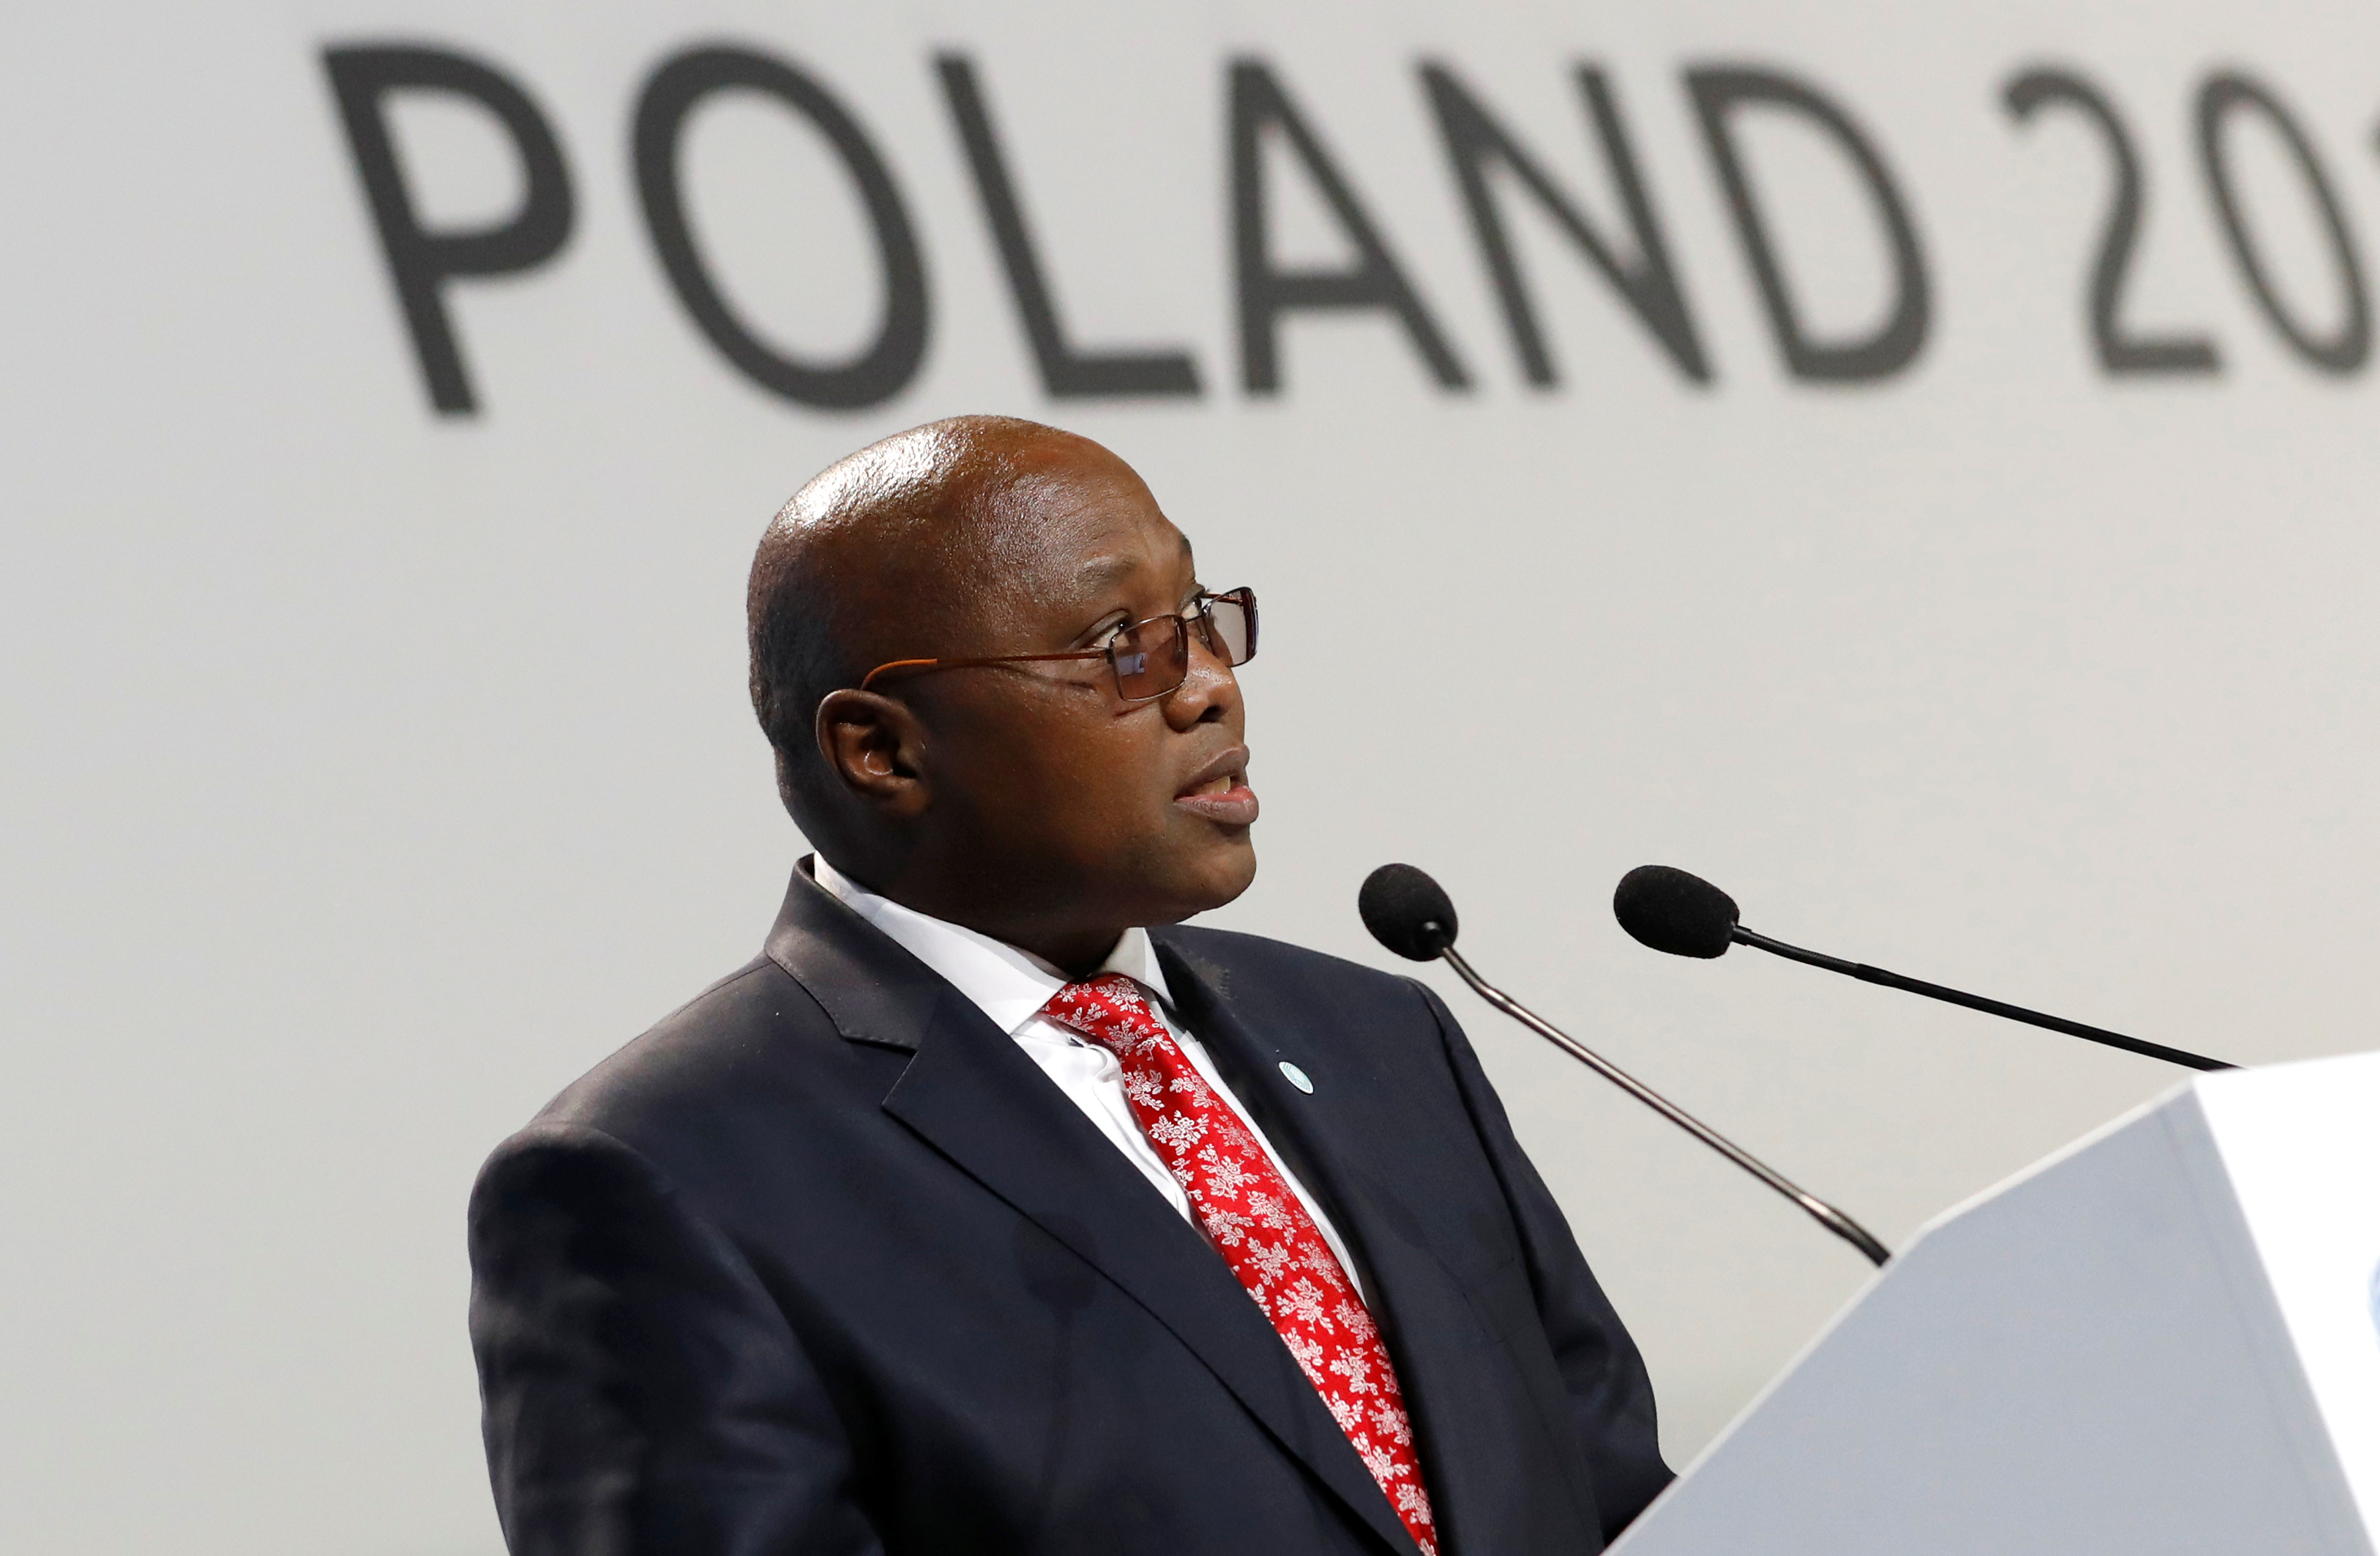 Prime Minister of Eswatini Ambrose Mandvulo Dlamini speaks during the COP24 UN Climate Change Conference 2018 in Katowice, Poland December 3, 2018. REUTERS/Kacper Pempel